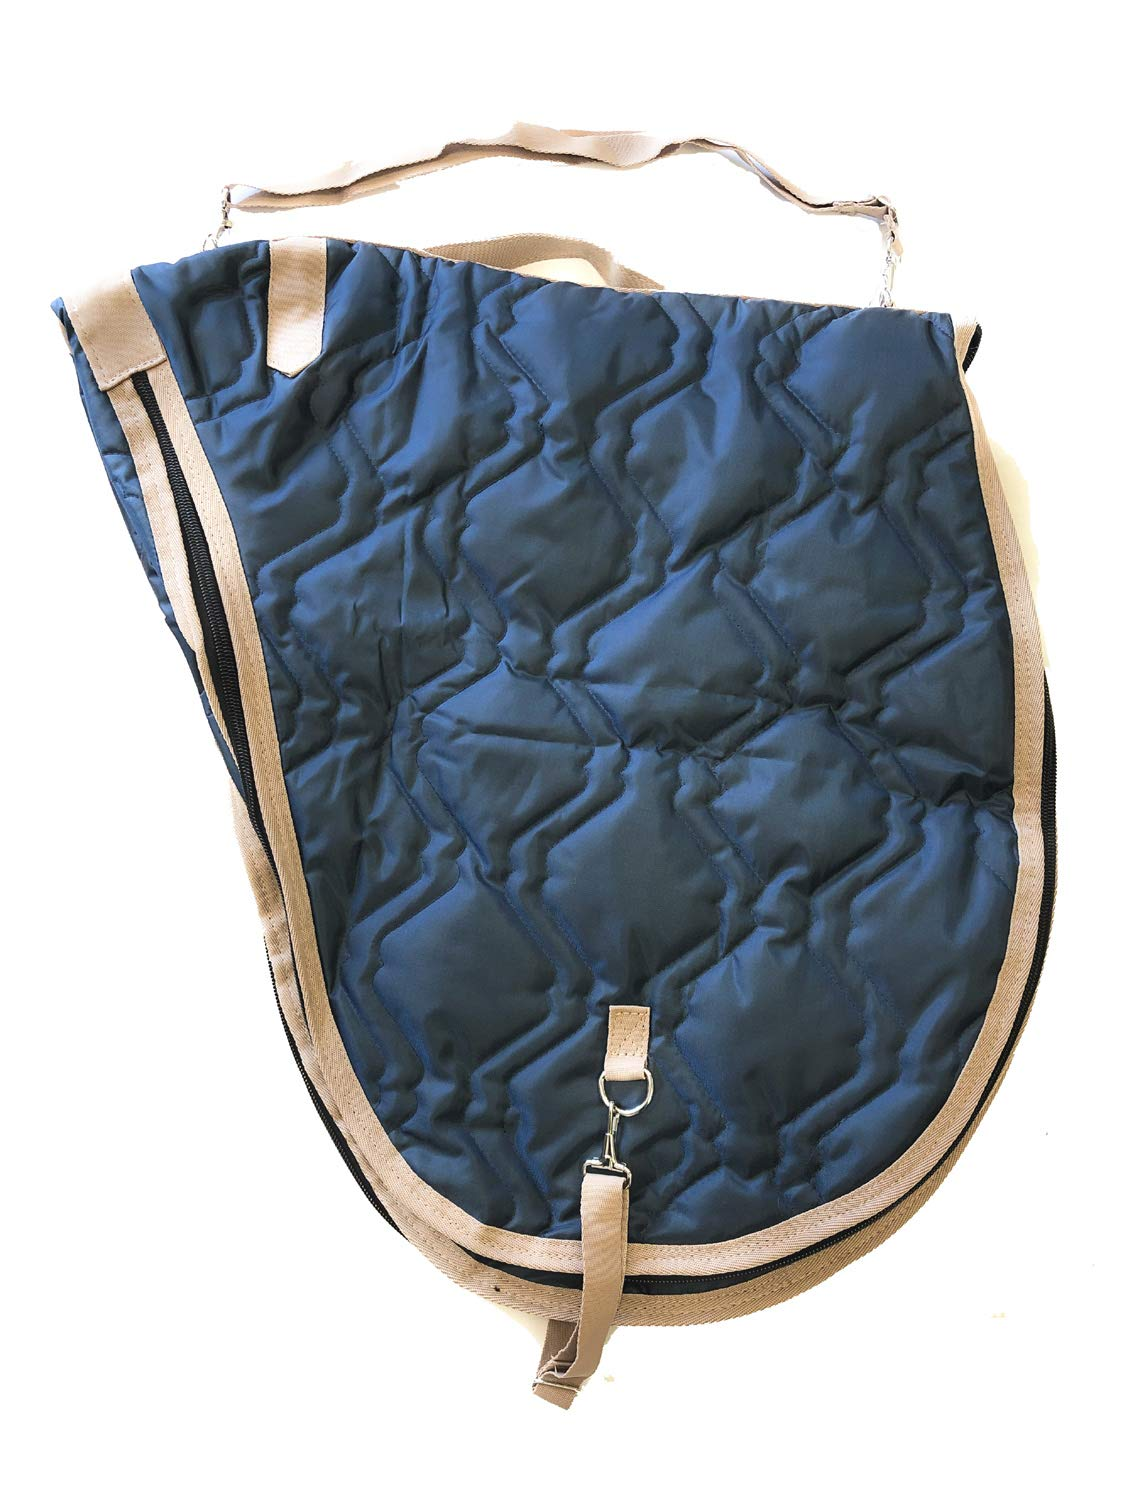 AJ Tack All Purpose English Horse Saddle Carrier Cover Travel Case Bag Padded Navy Blue